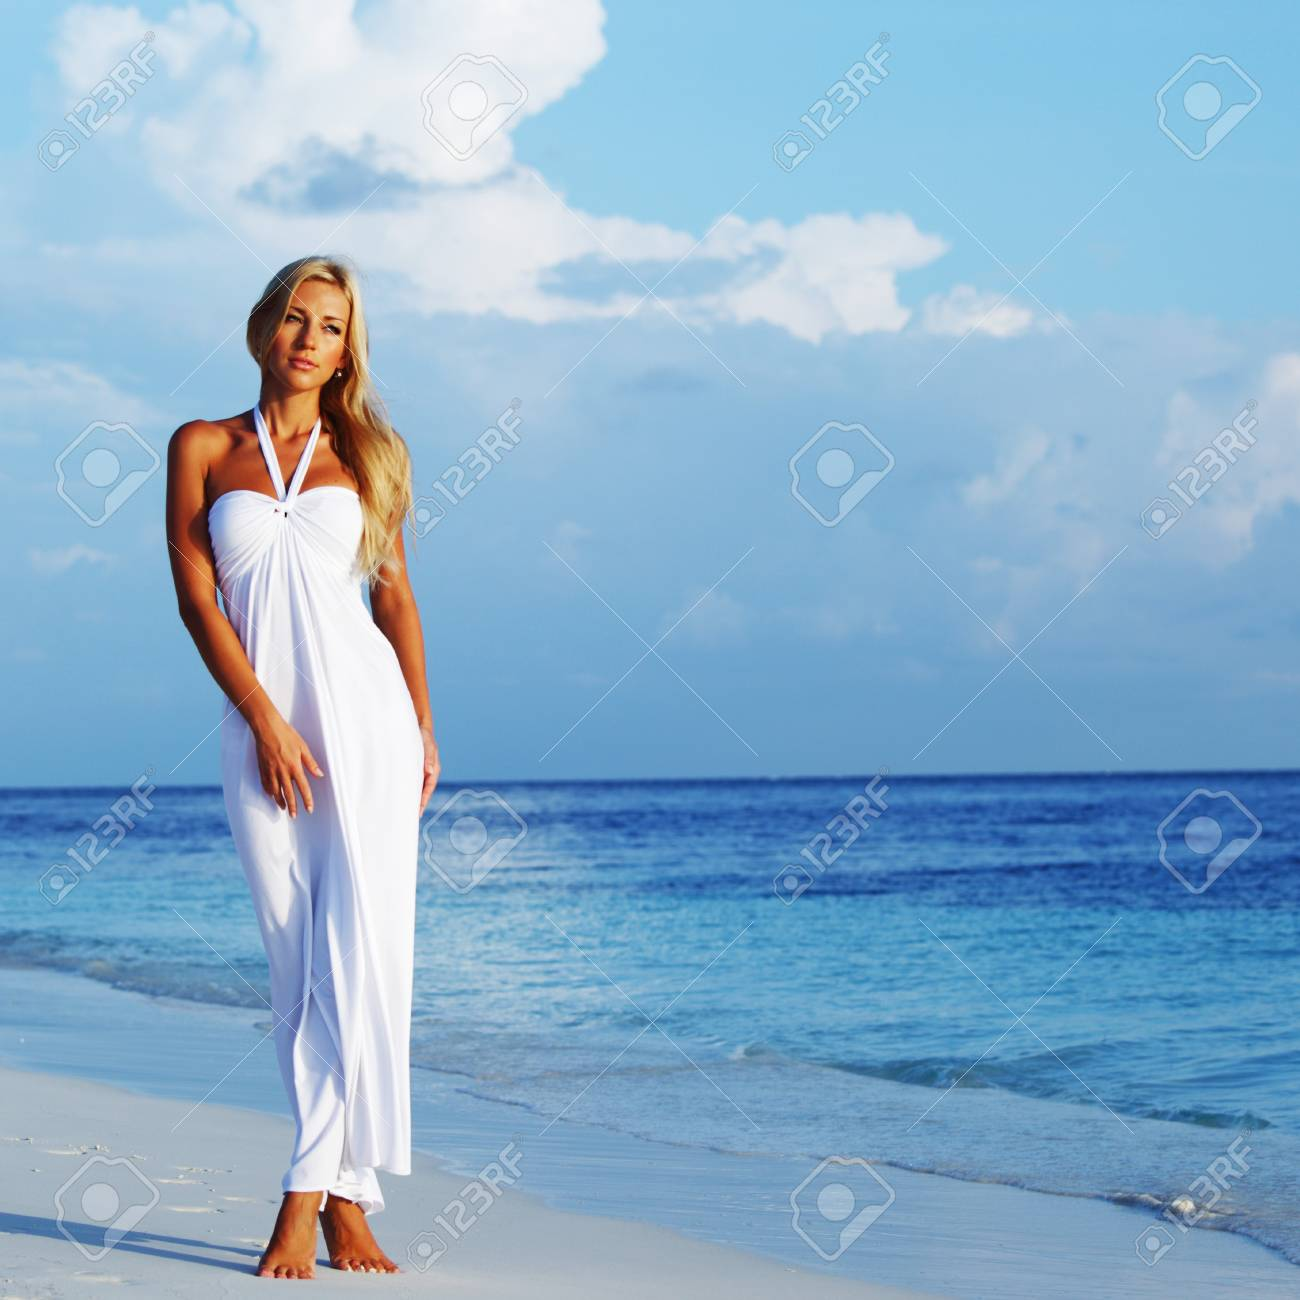 woman in a white dress on the ocean coast Stock Photo - 14130537